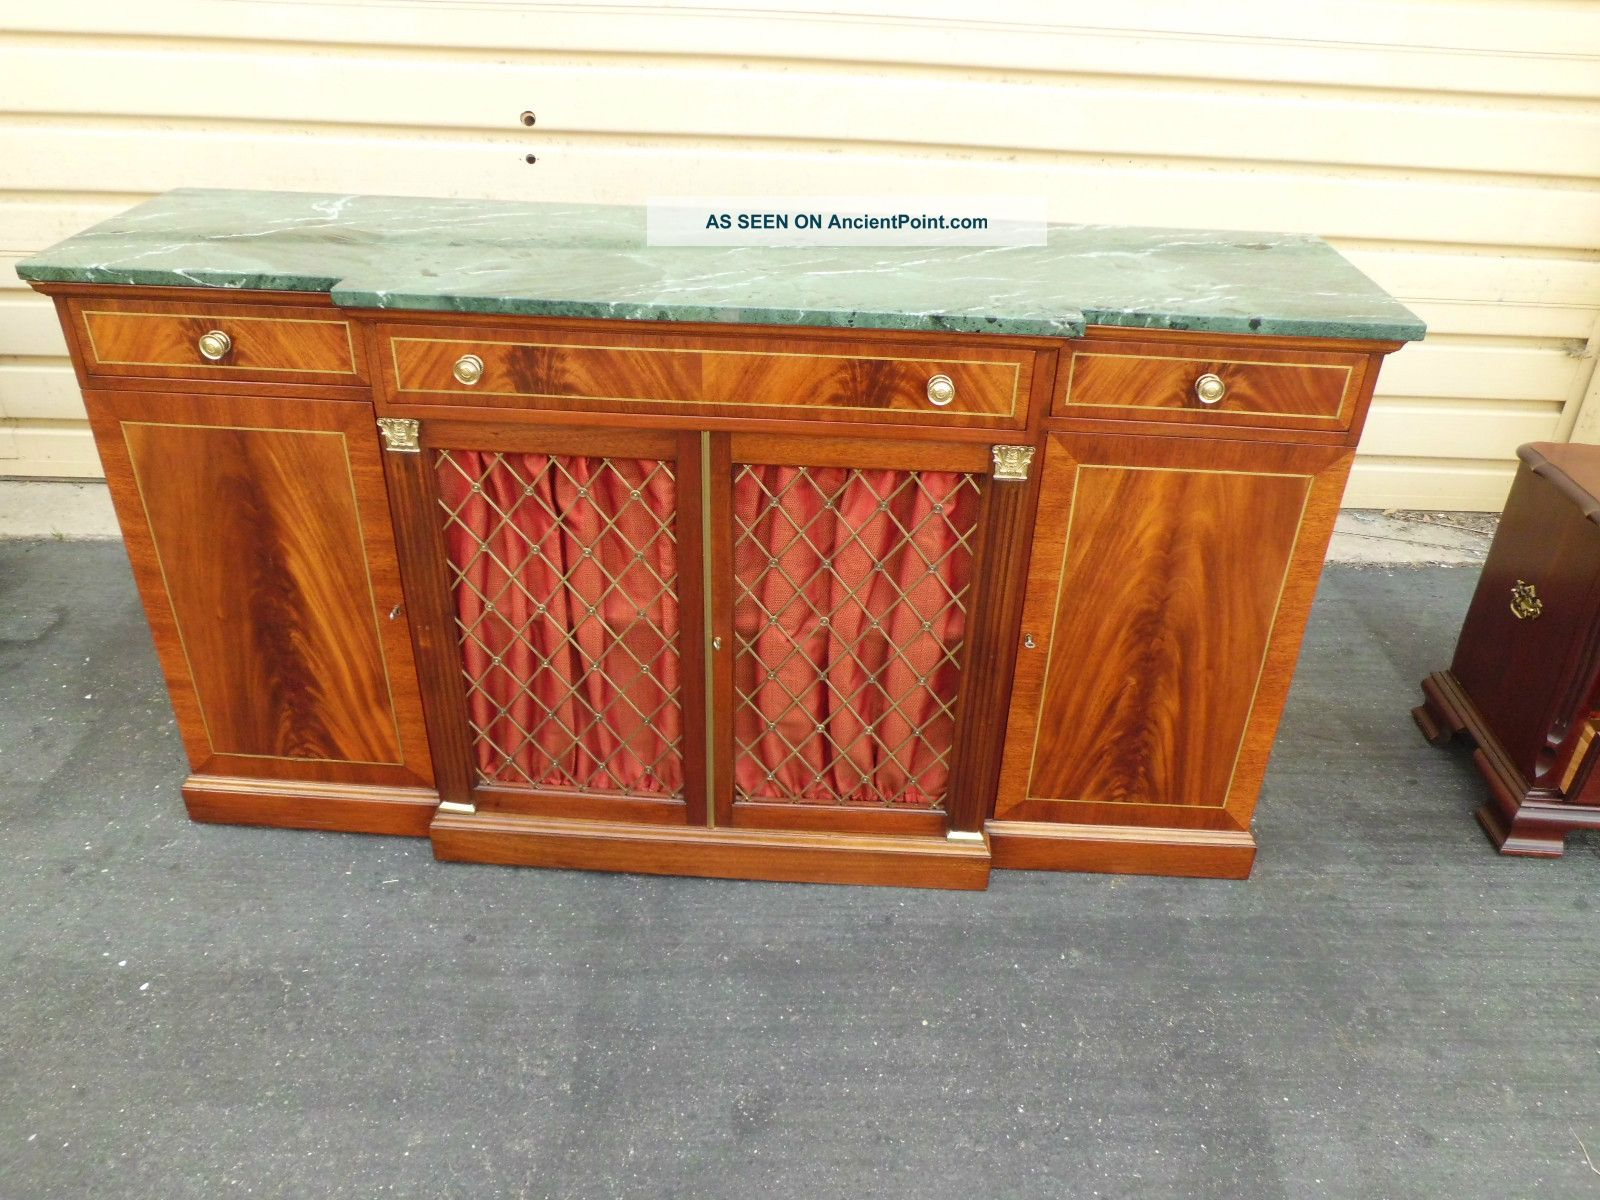 50739 Antique Kahl Furniture Marble Top Buffet Server Sideboard Cabinet Quality Post-1950 photo